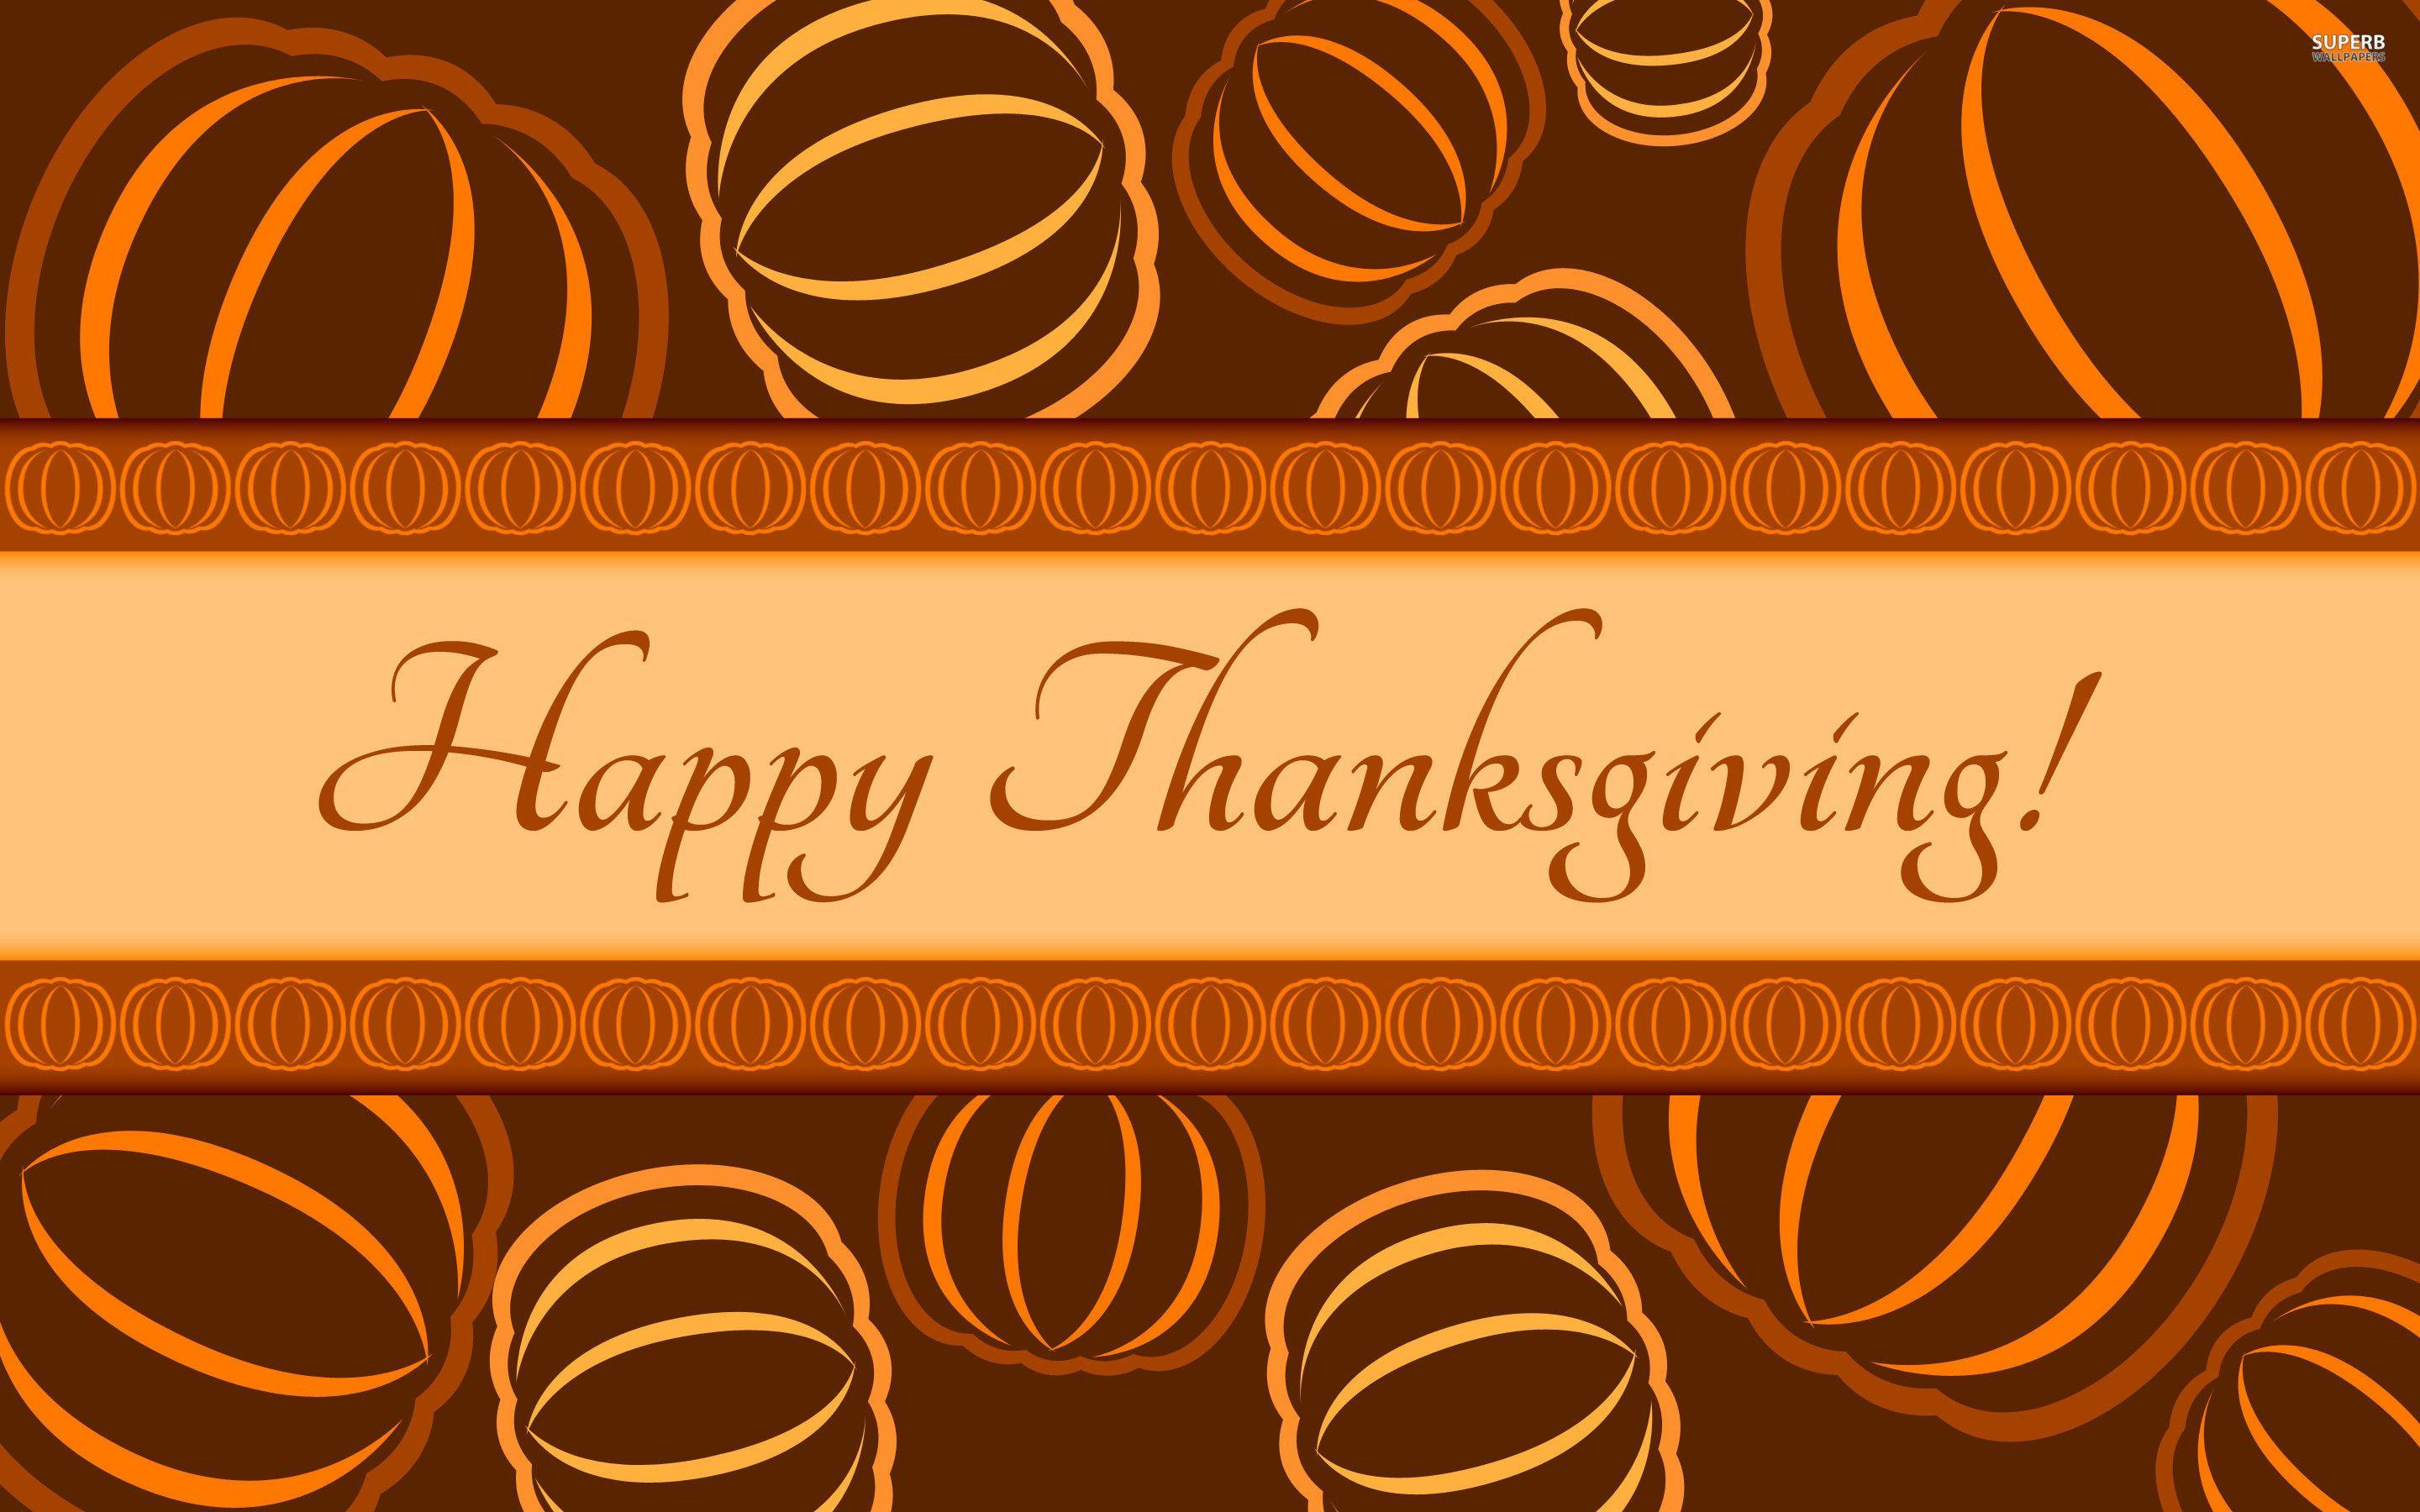 Wallpapers For > Happy Thanksgiving Backgrounds Image